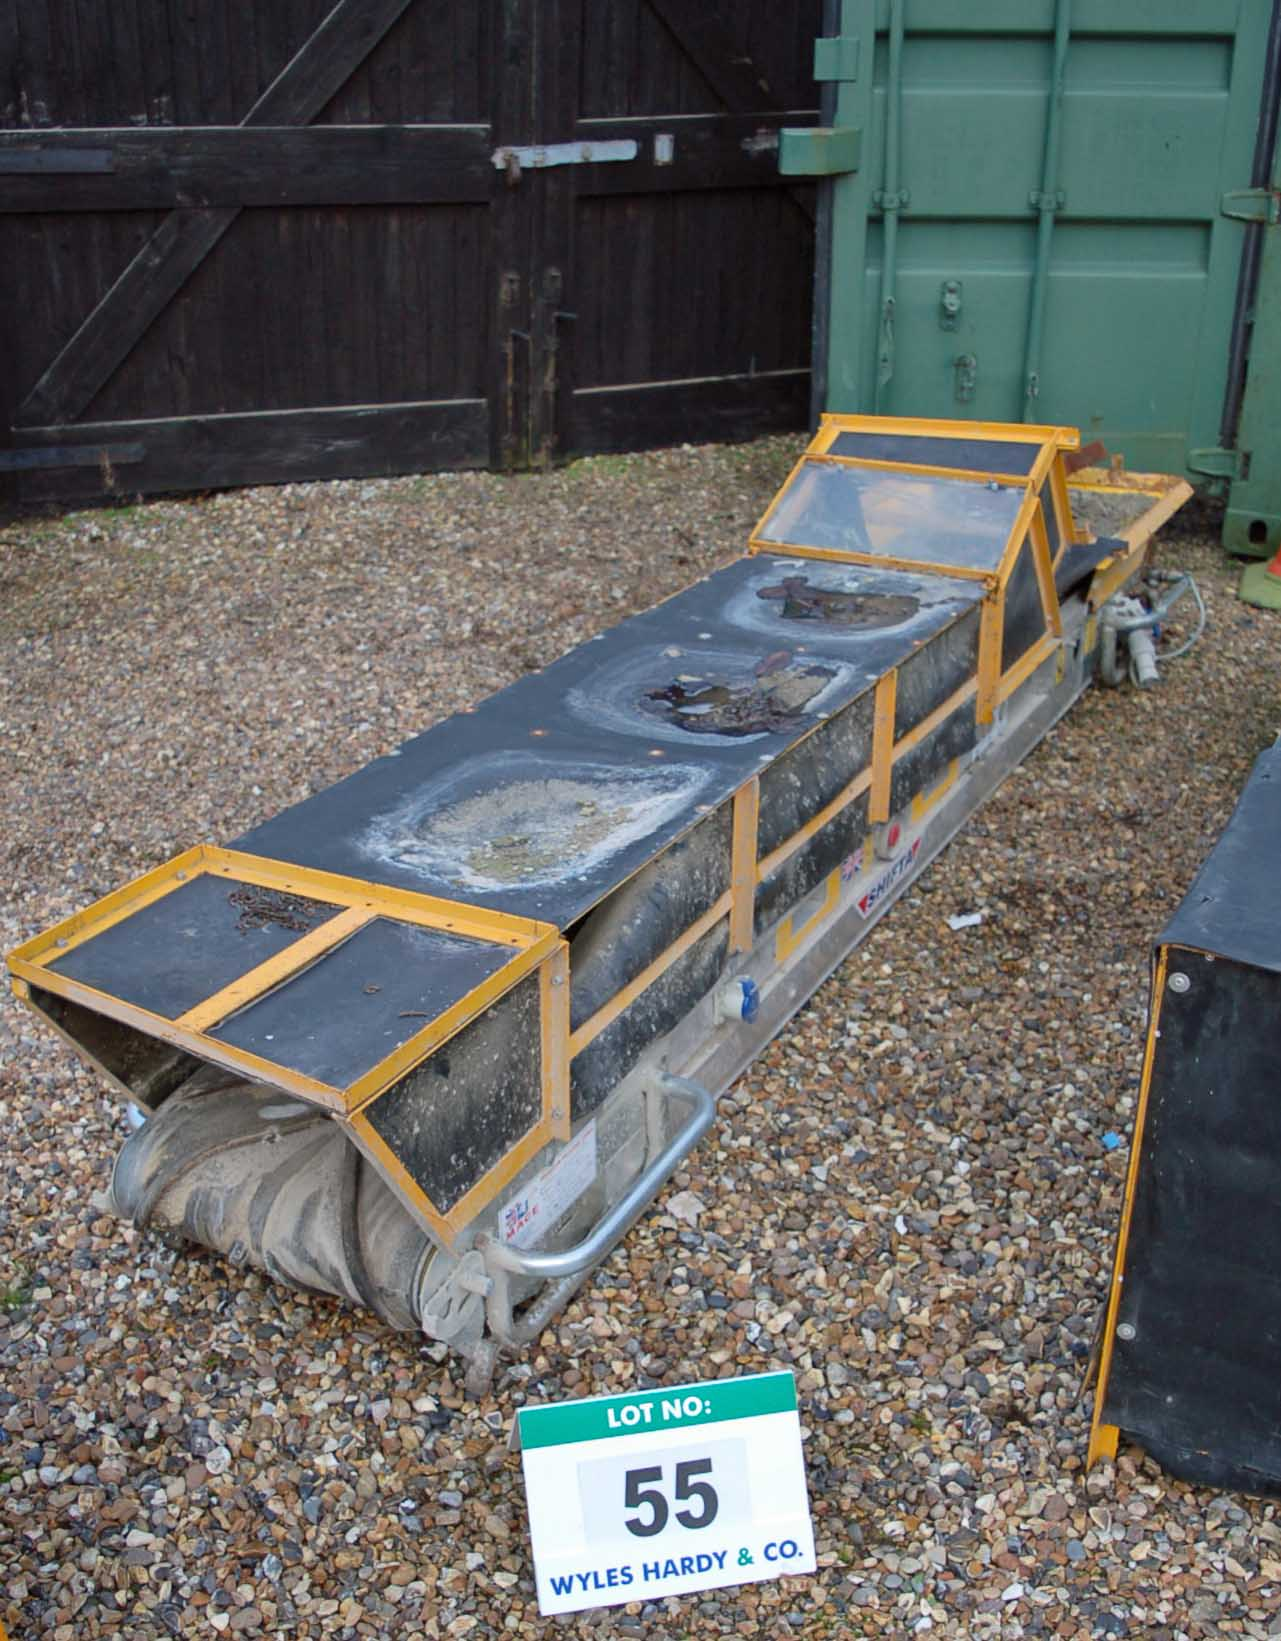 A MACE SHIFTA 3.2 Approximately 3.2 Meter x 450MM Electric Rubber Troughed Conveyor (110V).